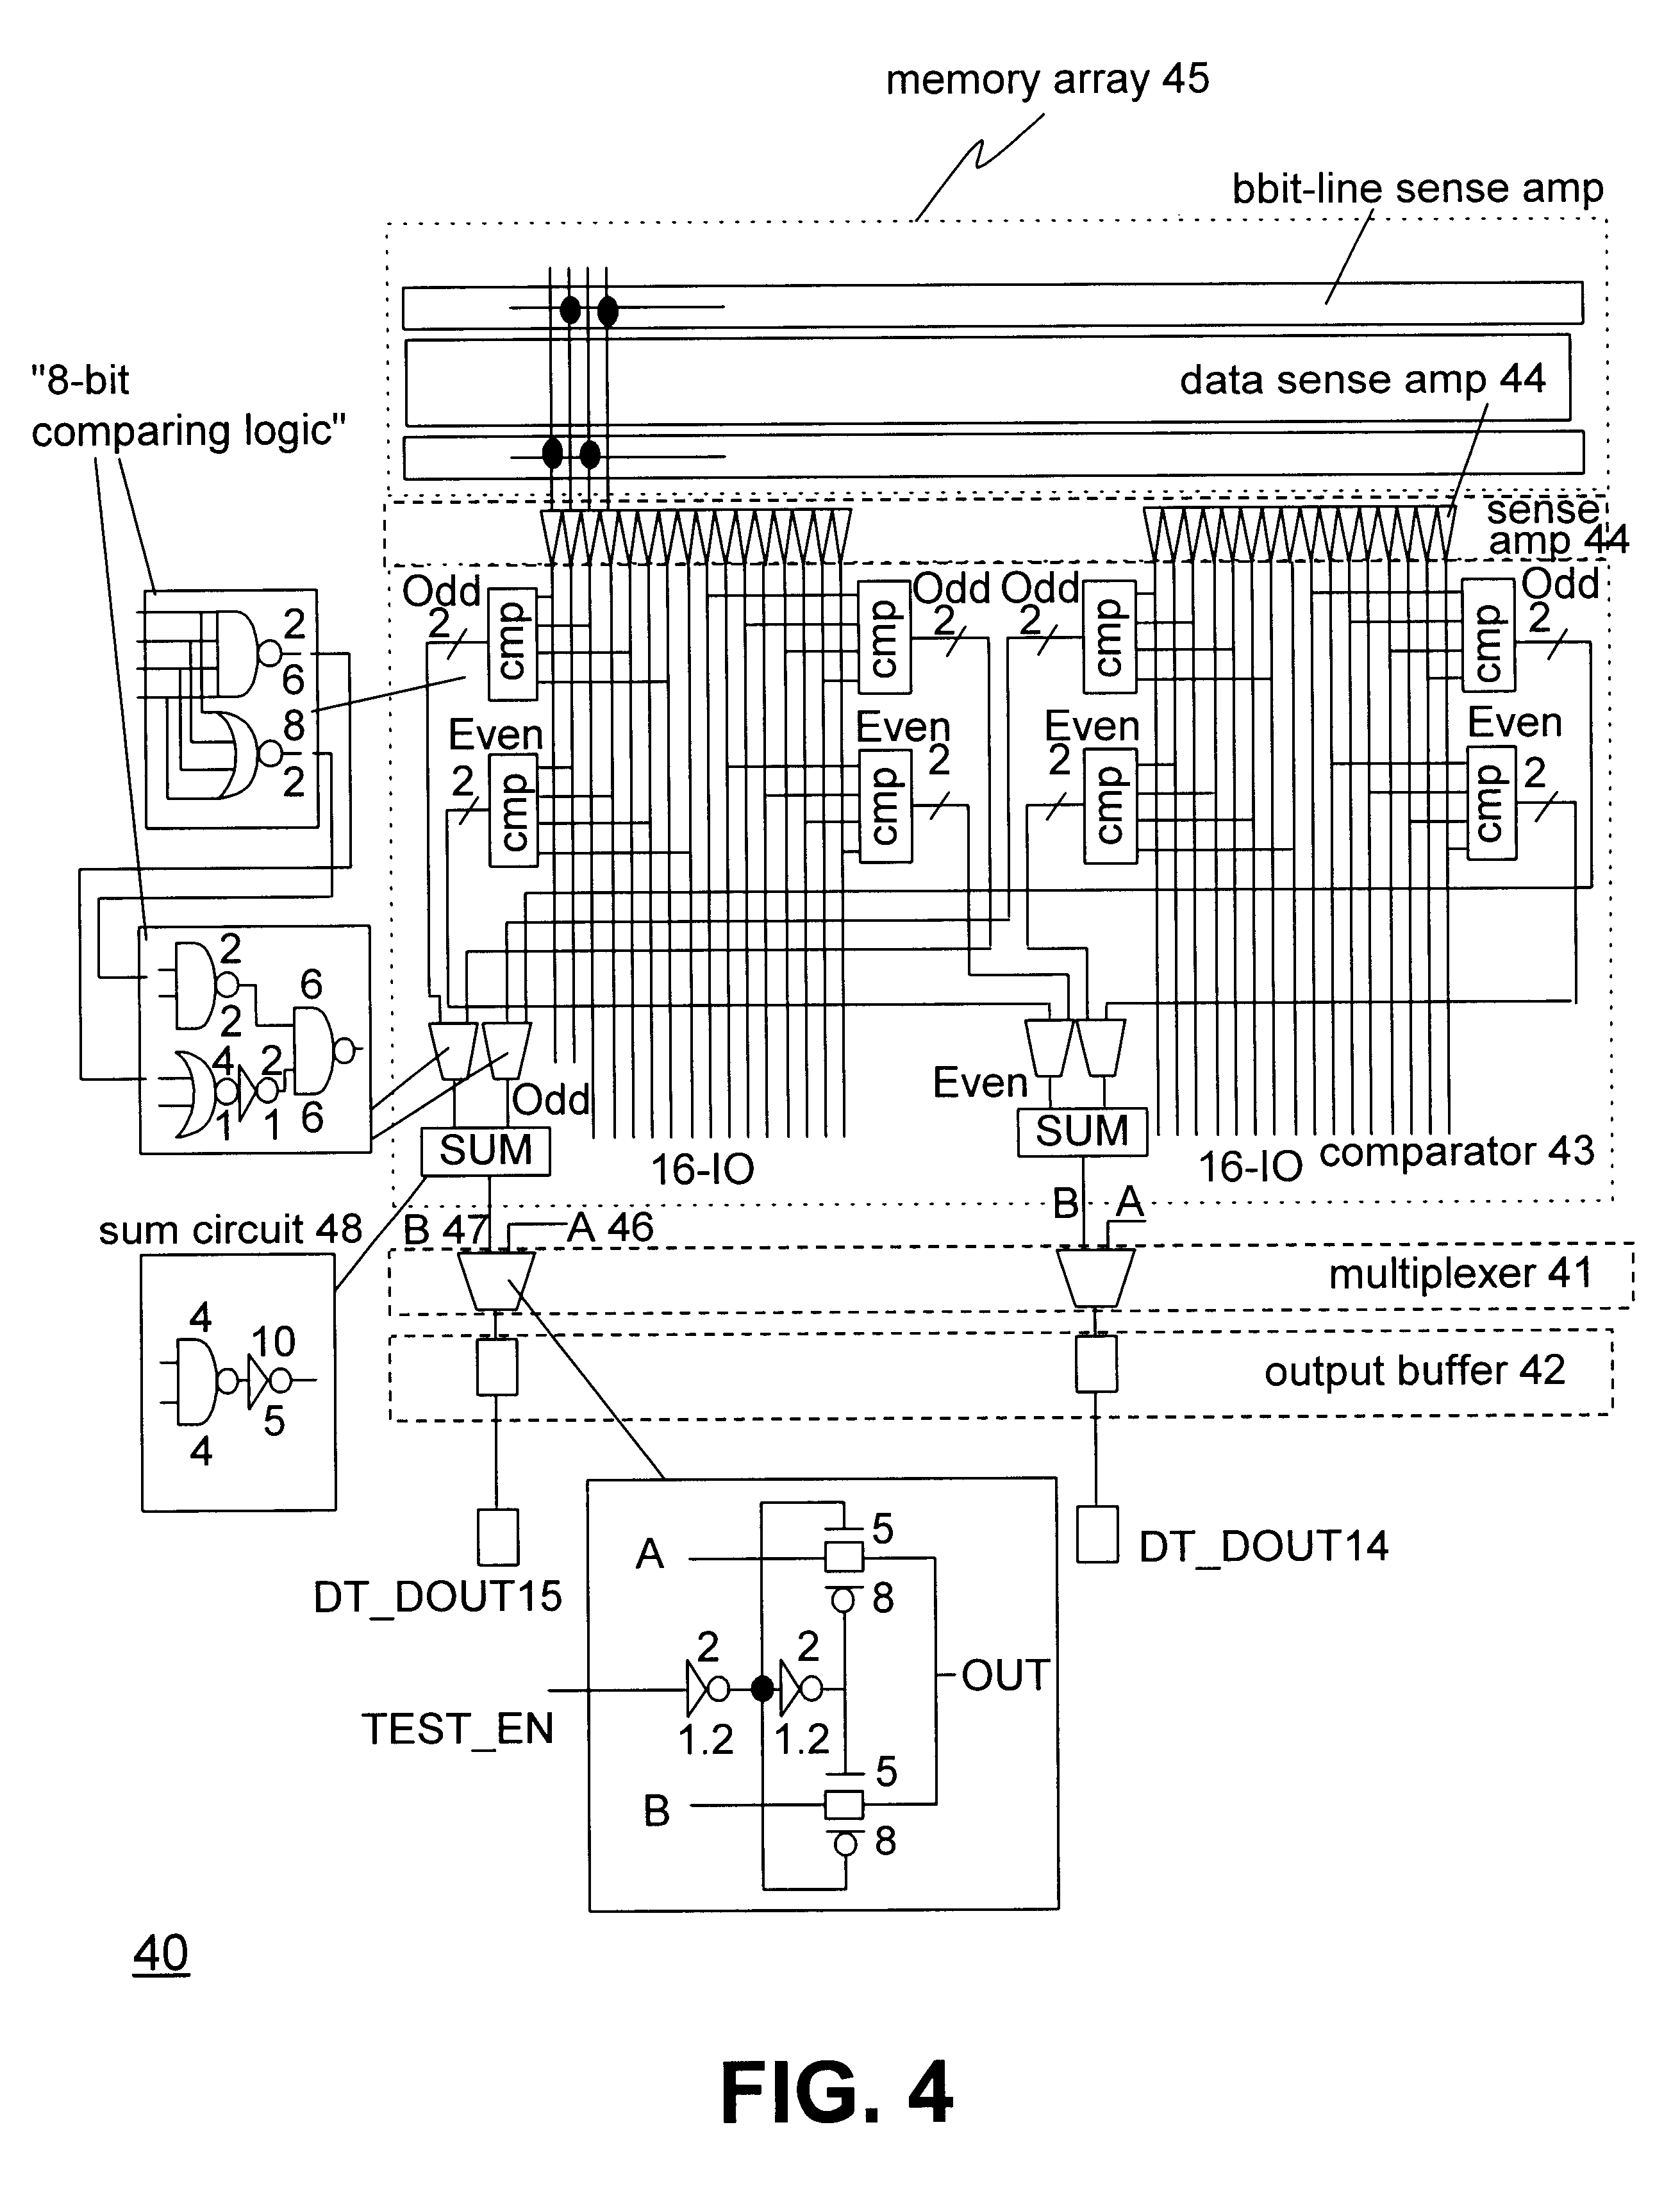 Us6262928 Parallel Test Circuit And Method For Wide Diagram Of 4 Bit Comparator Patent Drawing